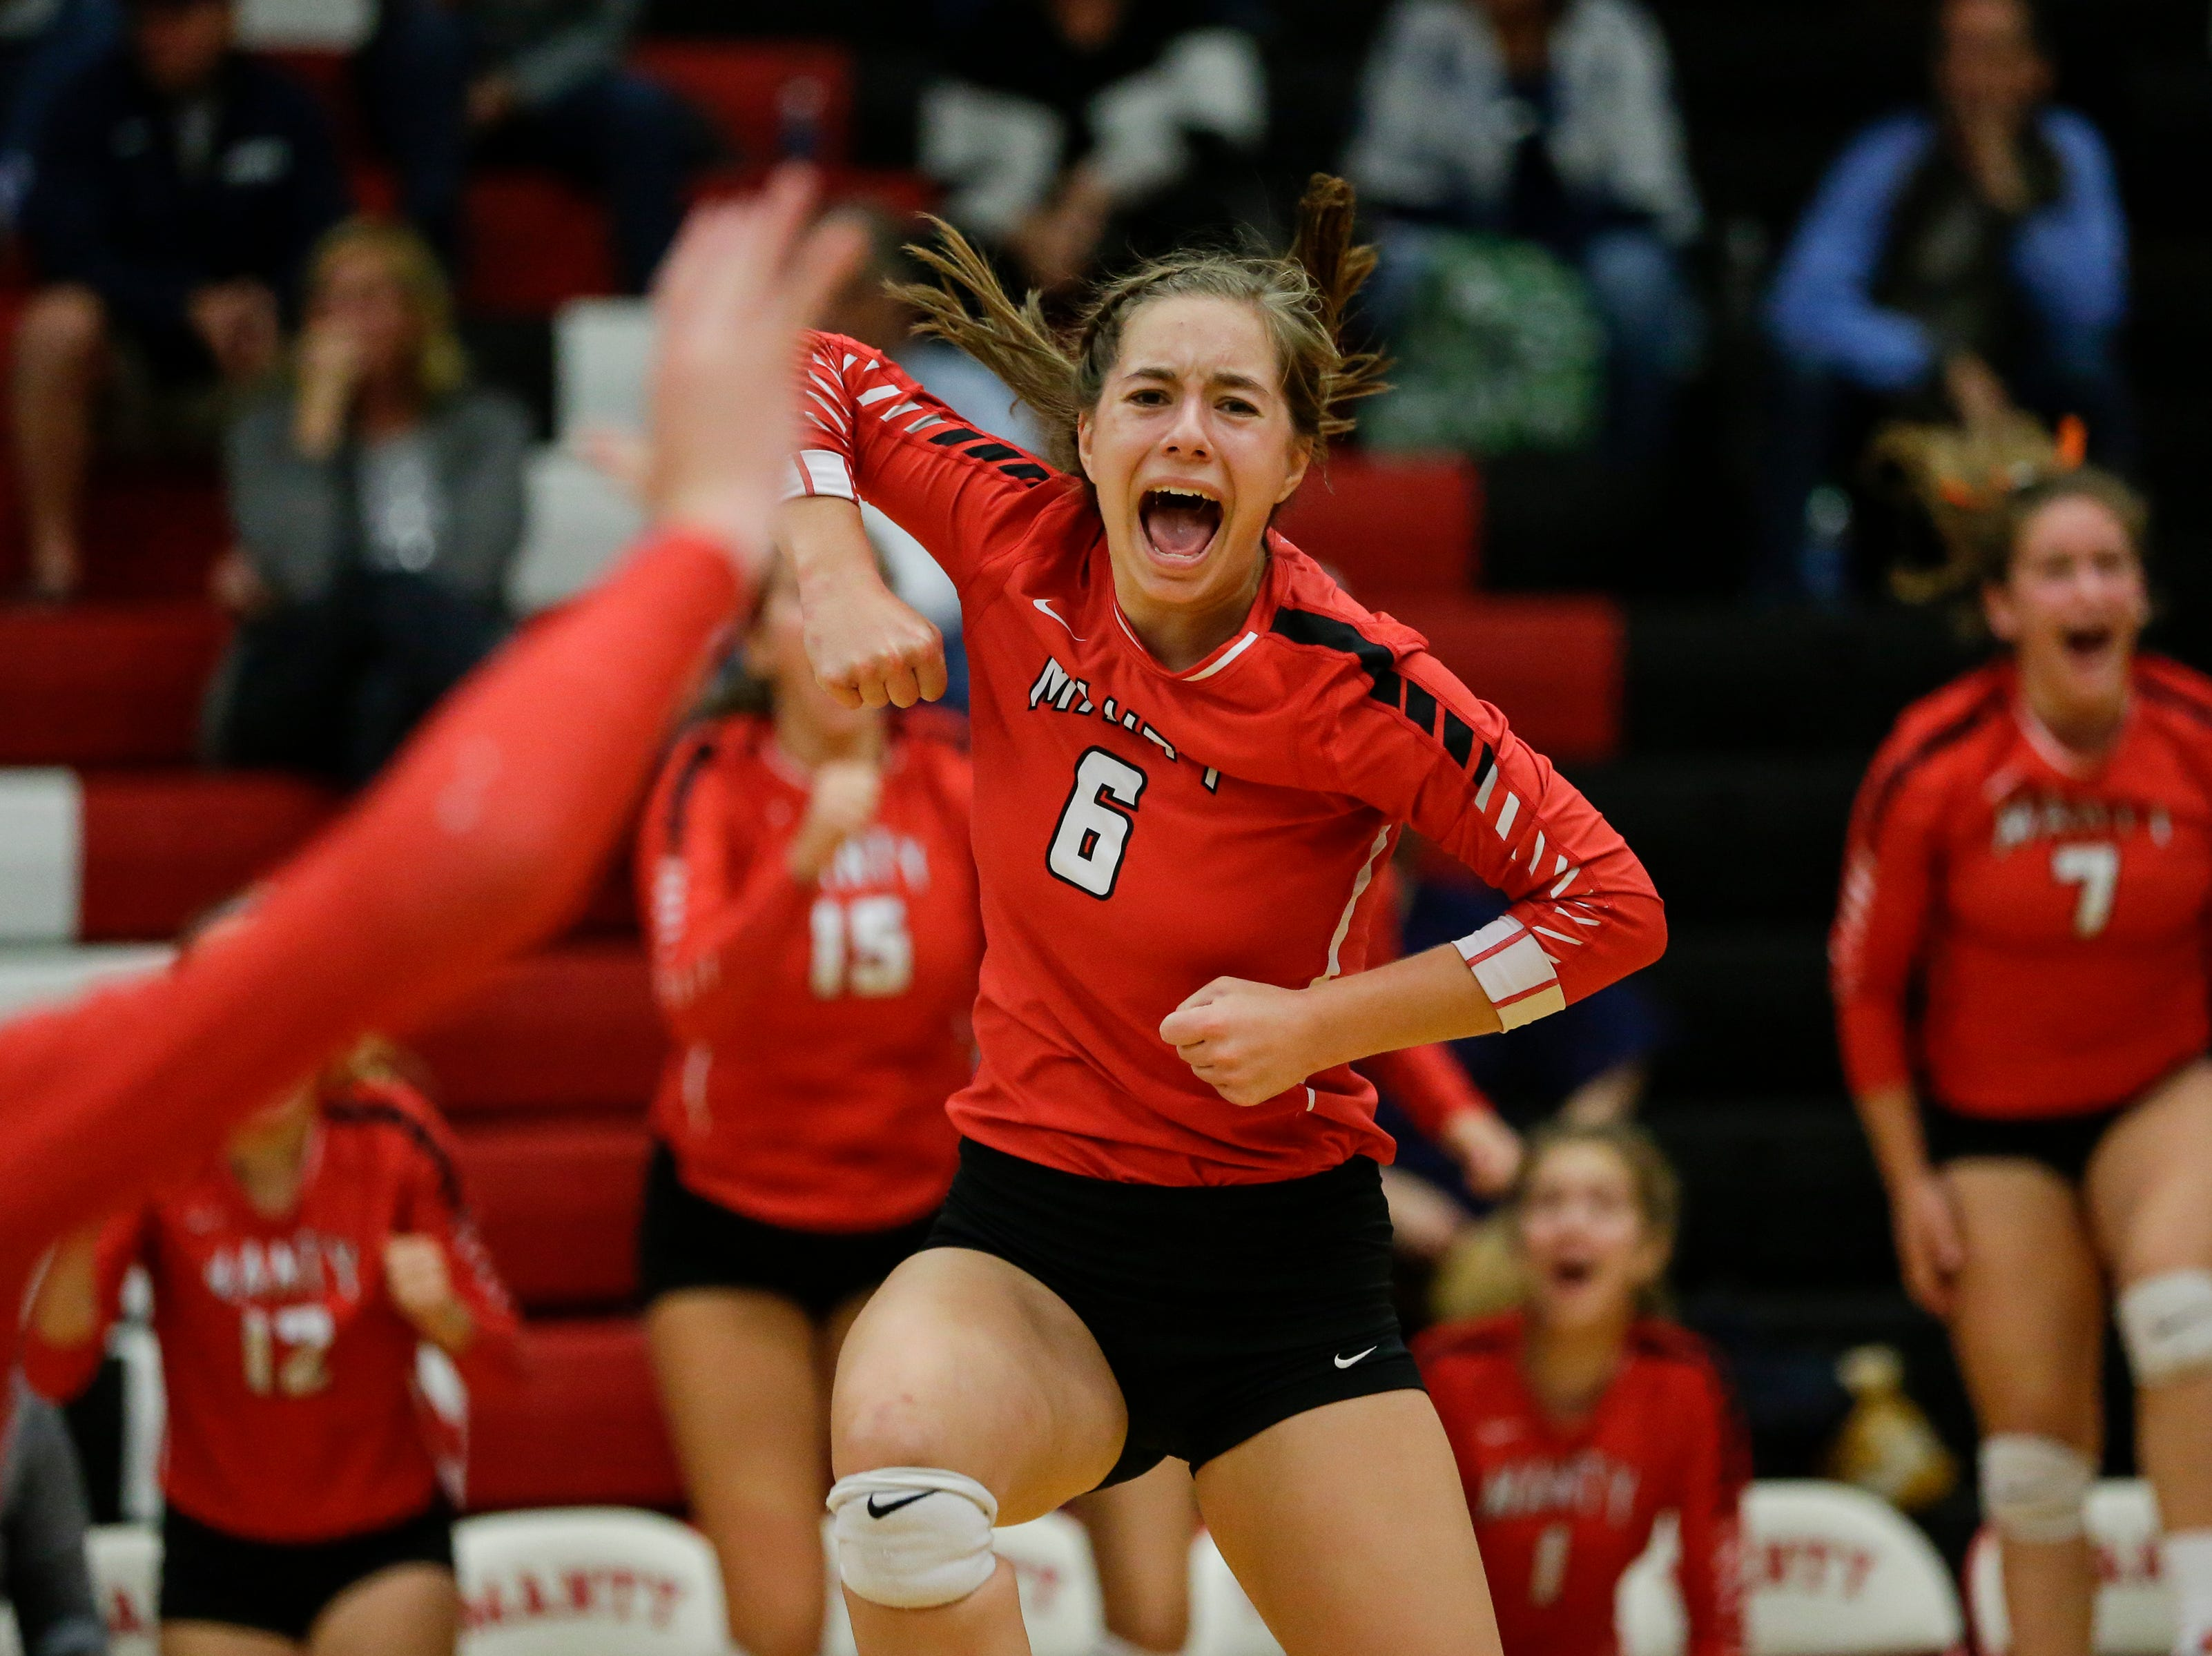 Lincoln's Paige Franz (6) reacts after a point against Sheboygan North after the Ships came back to force a fifth set in a Fox River Classic Conference game at Manitowoc Lincoln High School Tuesday, October 2, 2018, in Manitowoc, Wis. The Ships came back to defeat the Raiders 3-2 after losing the first two sets. Joshua Clark/USA TODAY NETWORK-Wisconsin